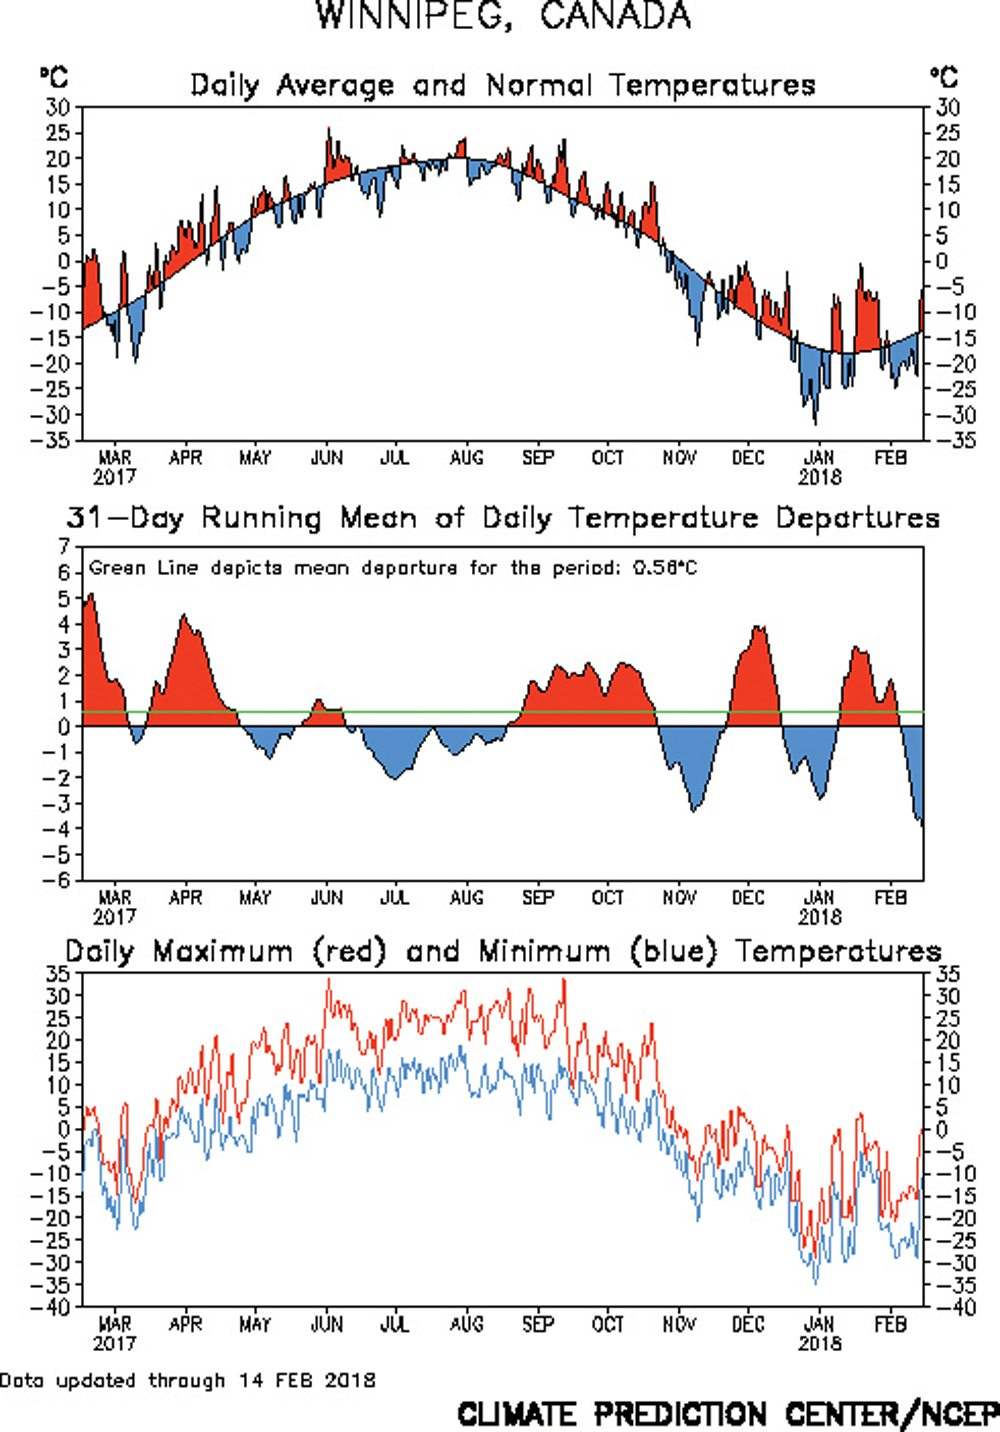 This graphic shows the temperature time series over the last year for Winnipeg. The top graph shows average daily temperatures over the last year, with above-average temperatures in red and below average in blue. The middle graph shows the same data using a 31-day running mean, which smooths out short-term fluctuations in temperature. The final graph shows the raw day-to-day maximum and minimum temperatures.